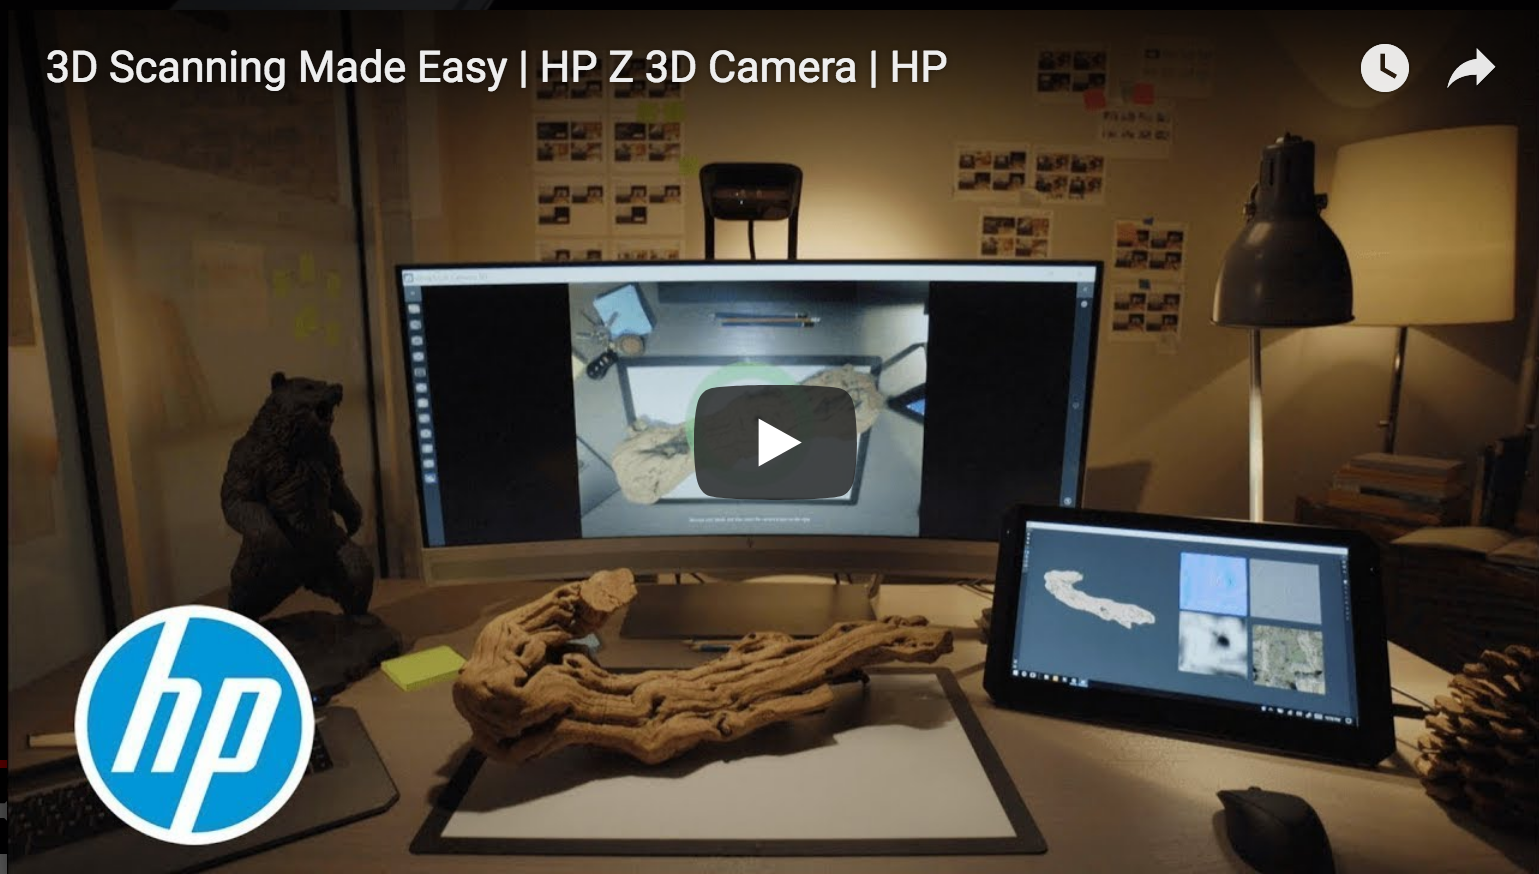 3D Scanning Made Easy- HP Z 3D Camera – ELSE Research by ELSE Corp